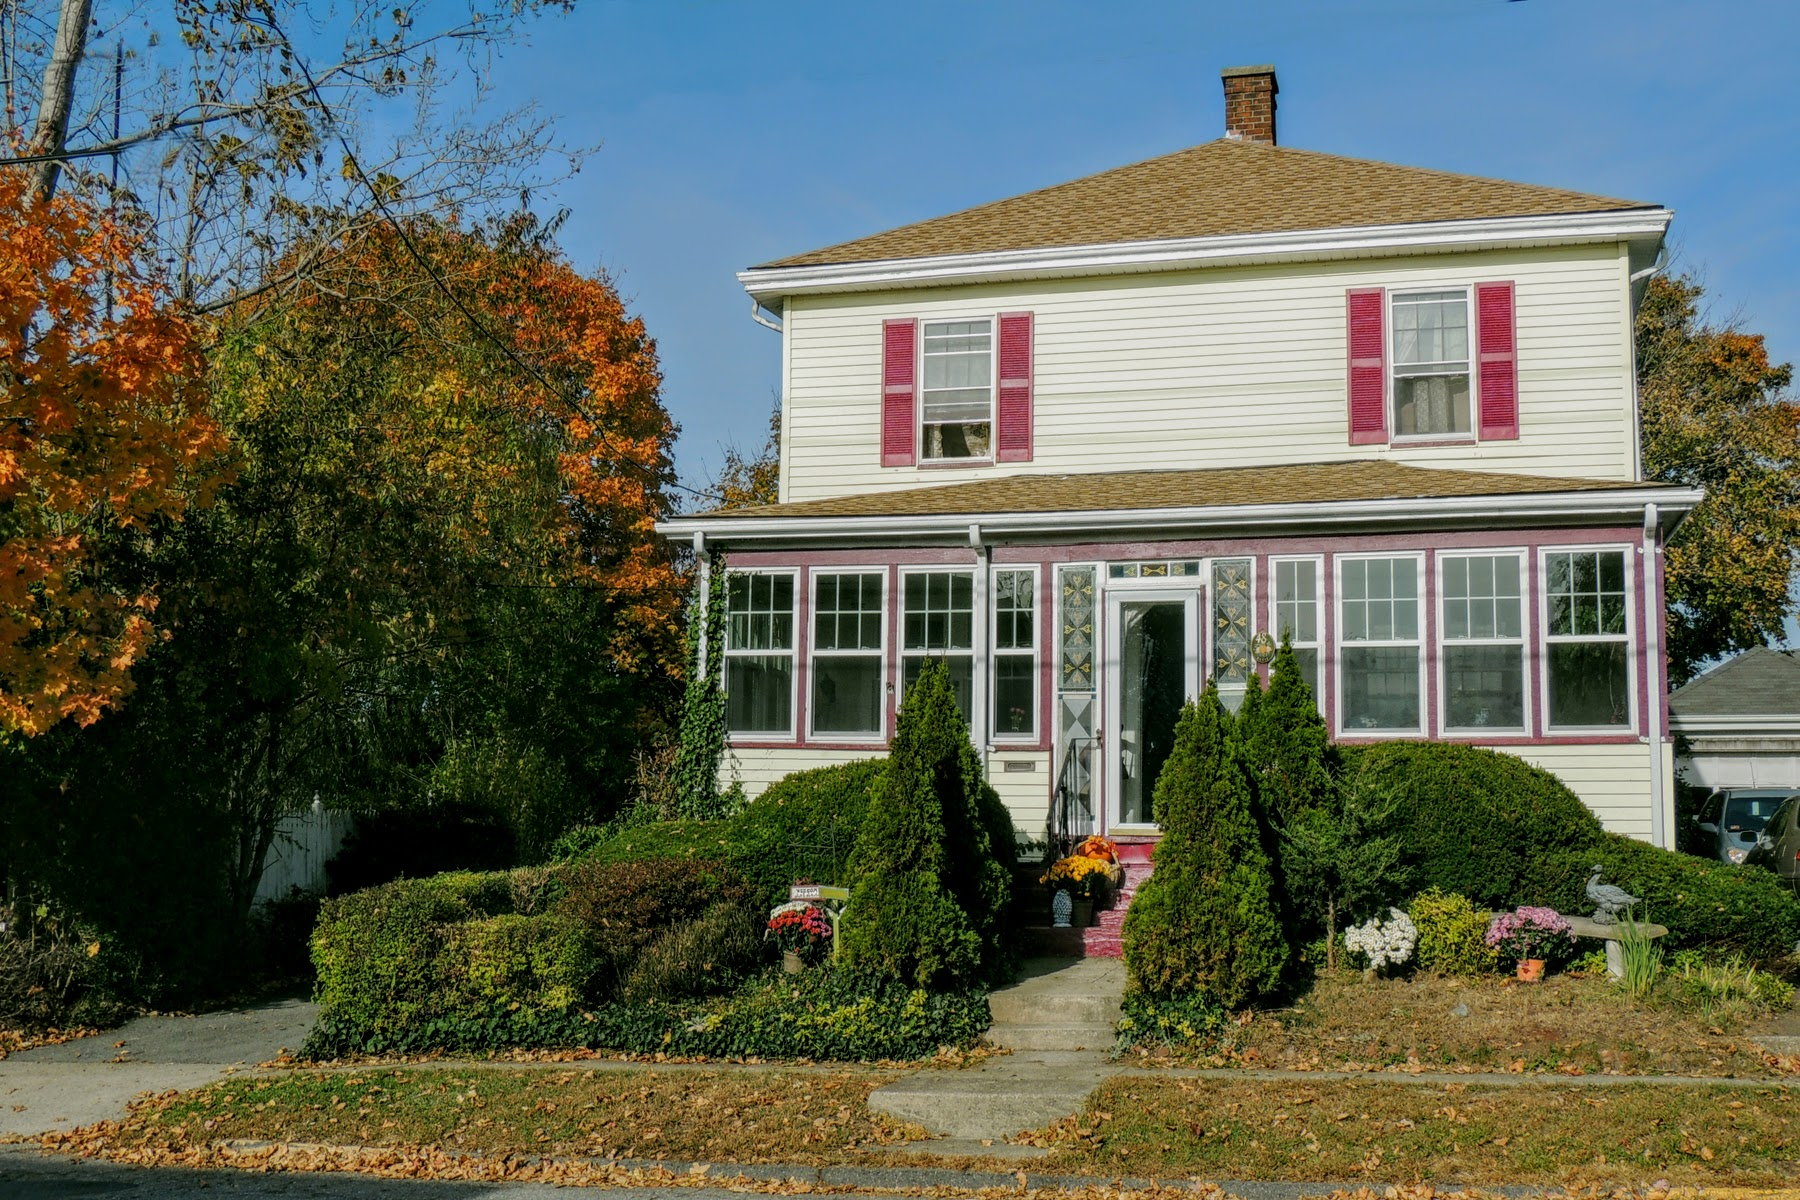 Single Family Home for Sale at Off Broadway 48 Bedlow Avenue Newport, Rhode Island, 02840 United States